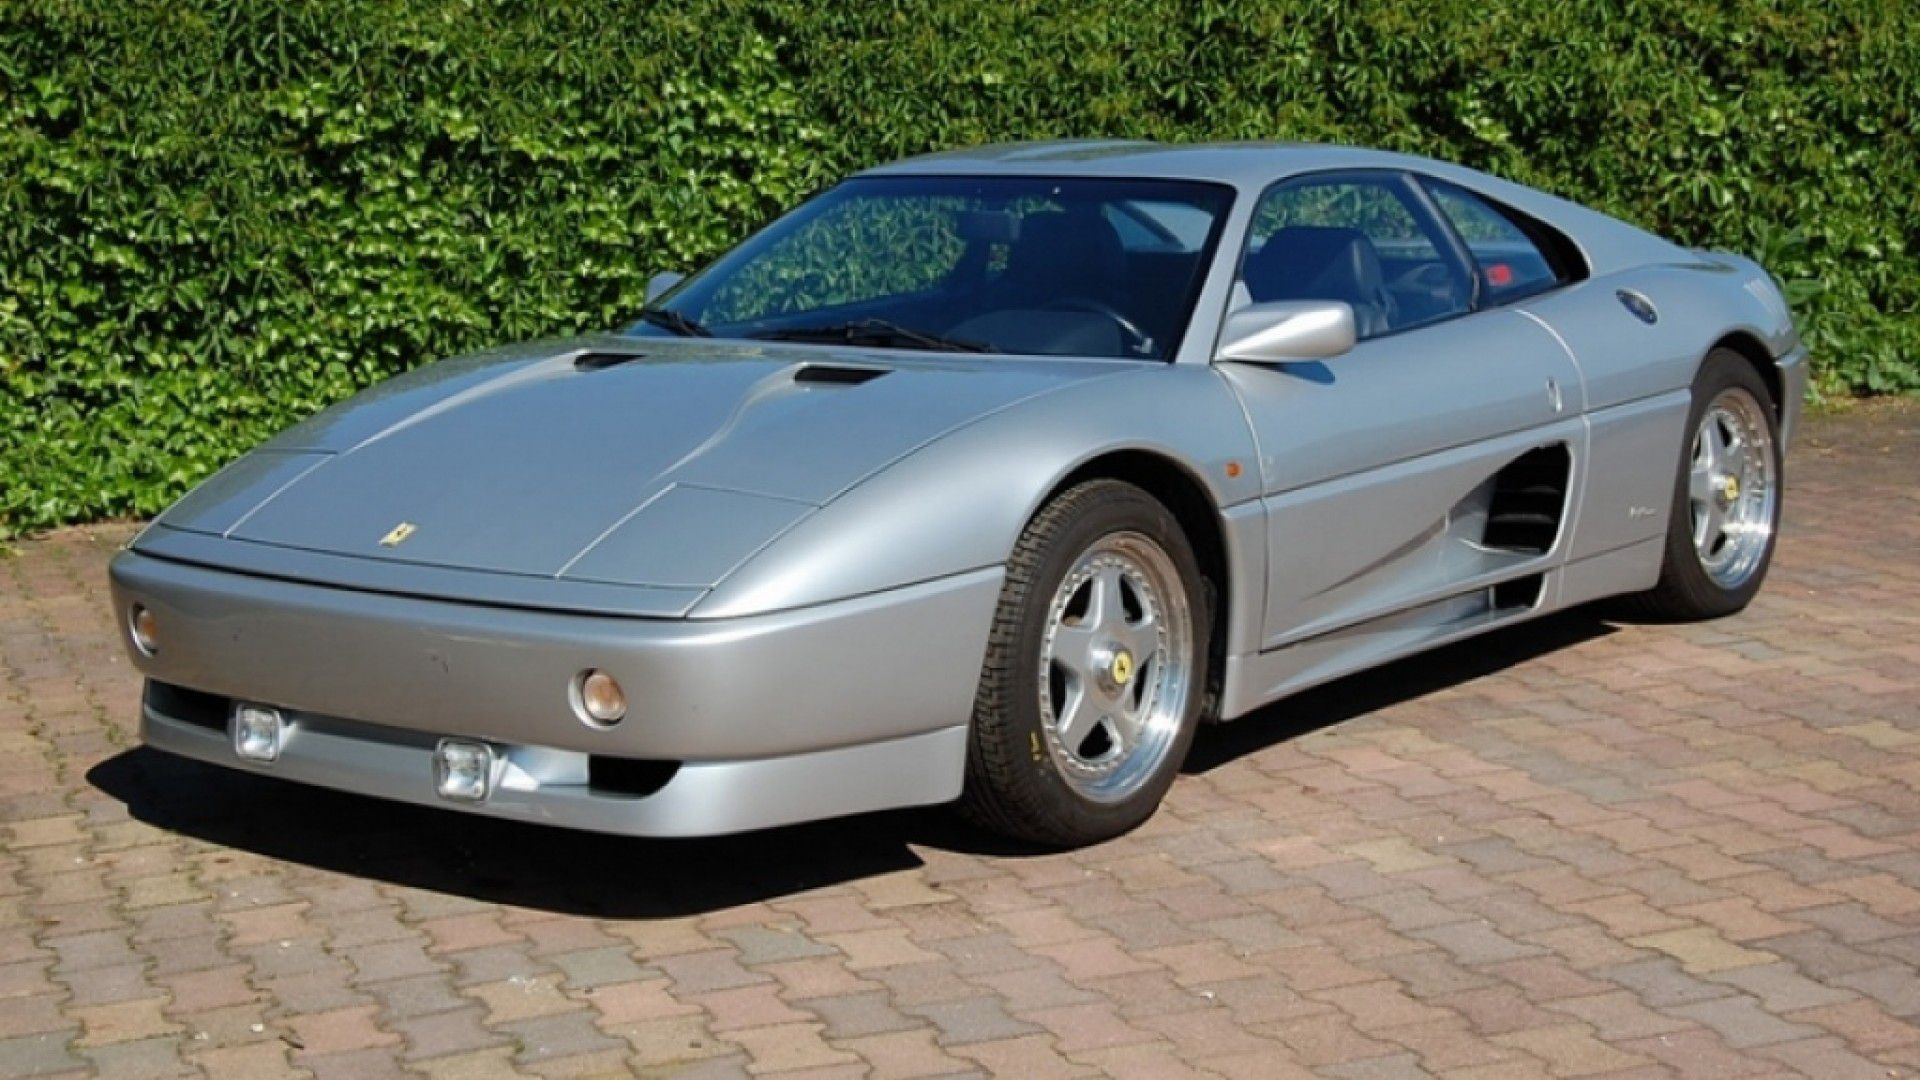 Ferrari 348 Zagato Elaborazione 187 Definitive List Cars